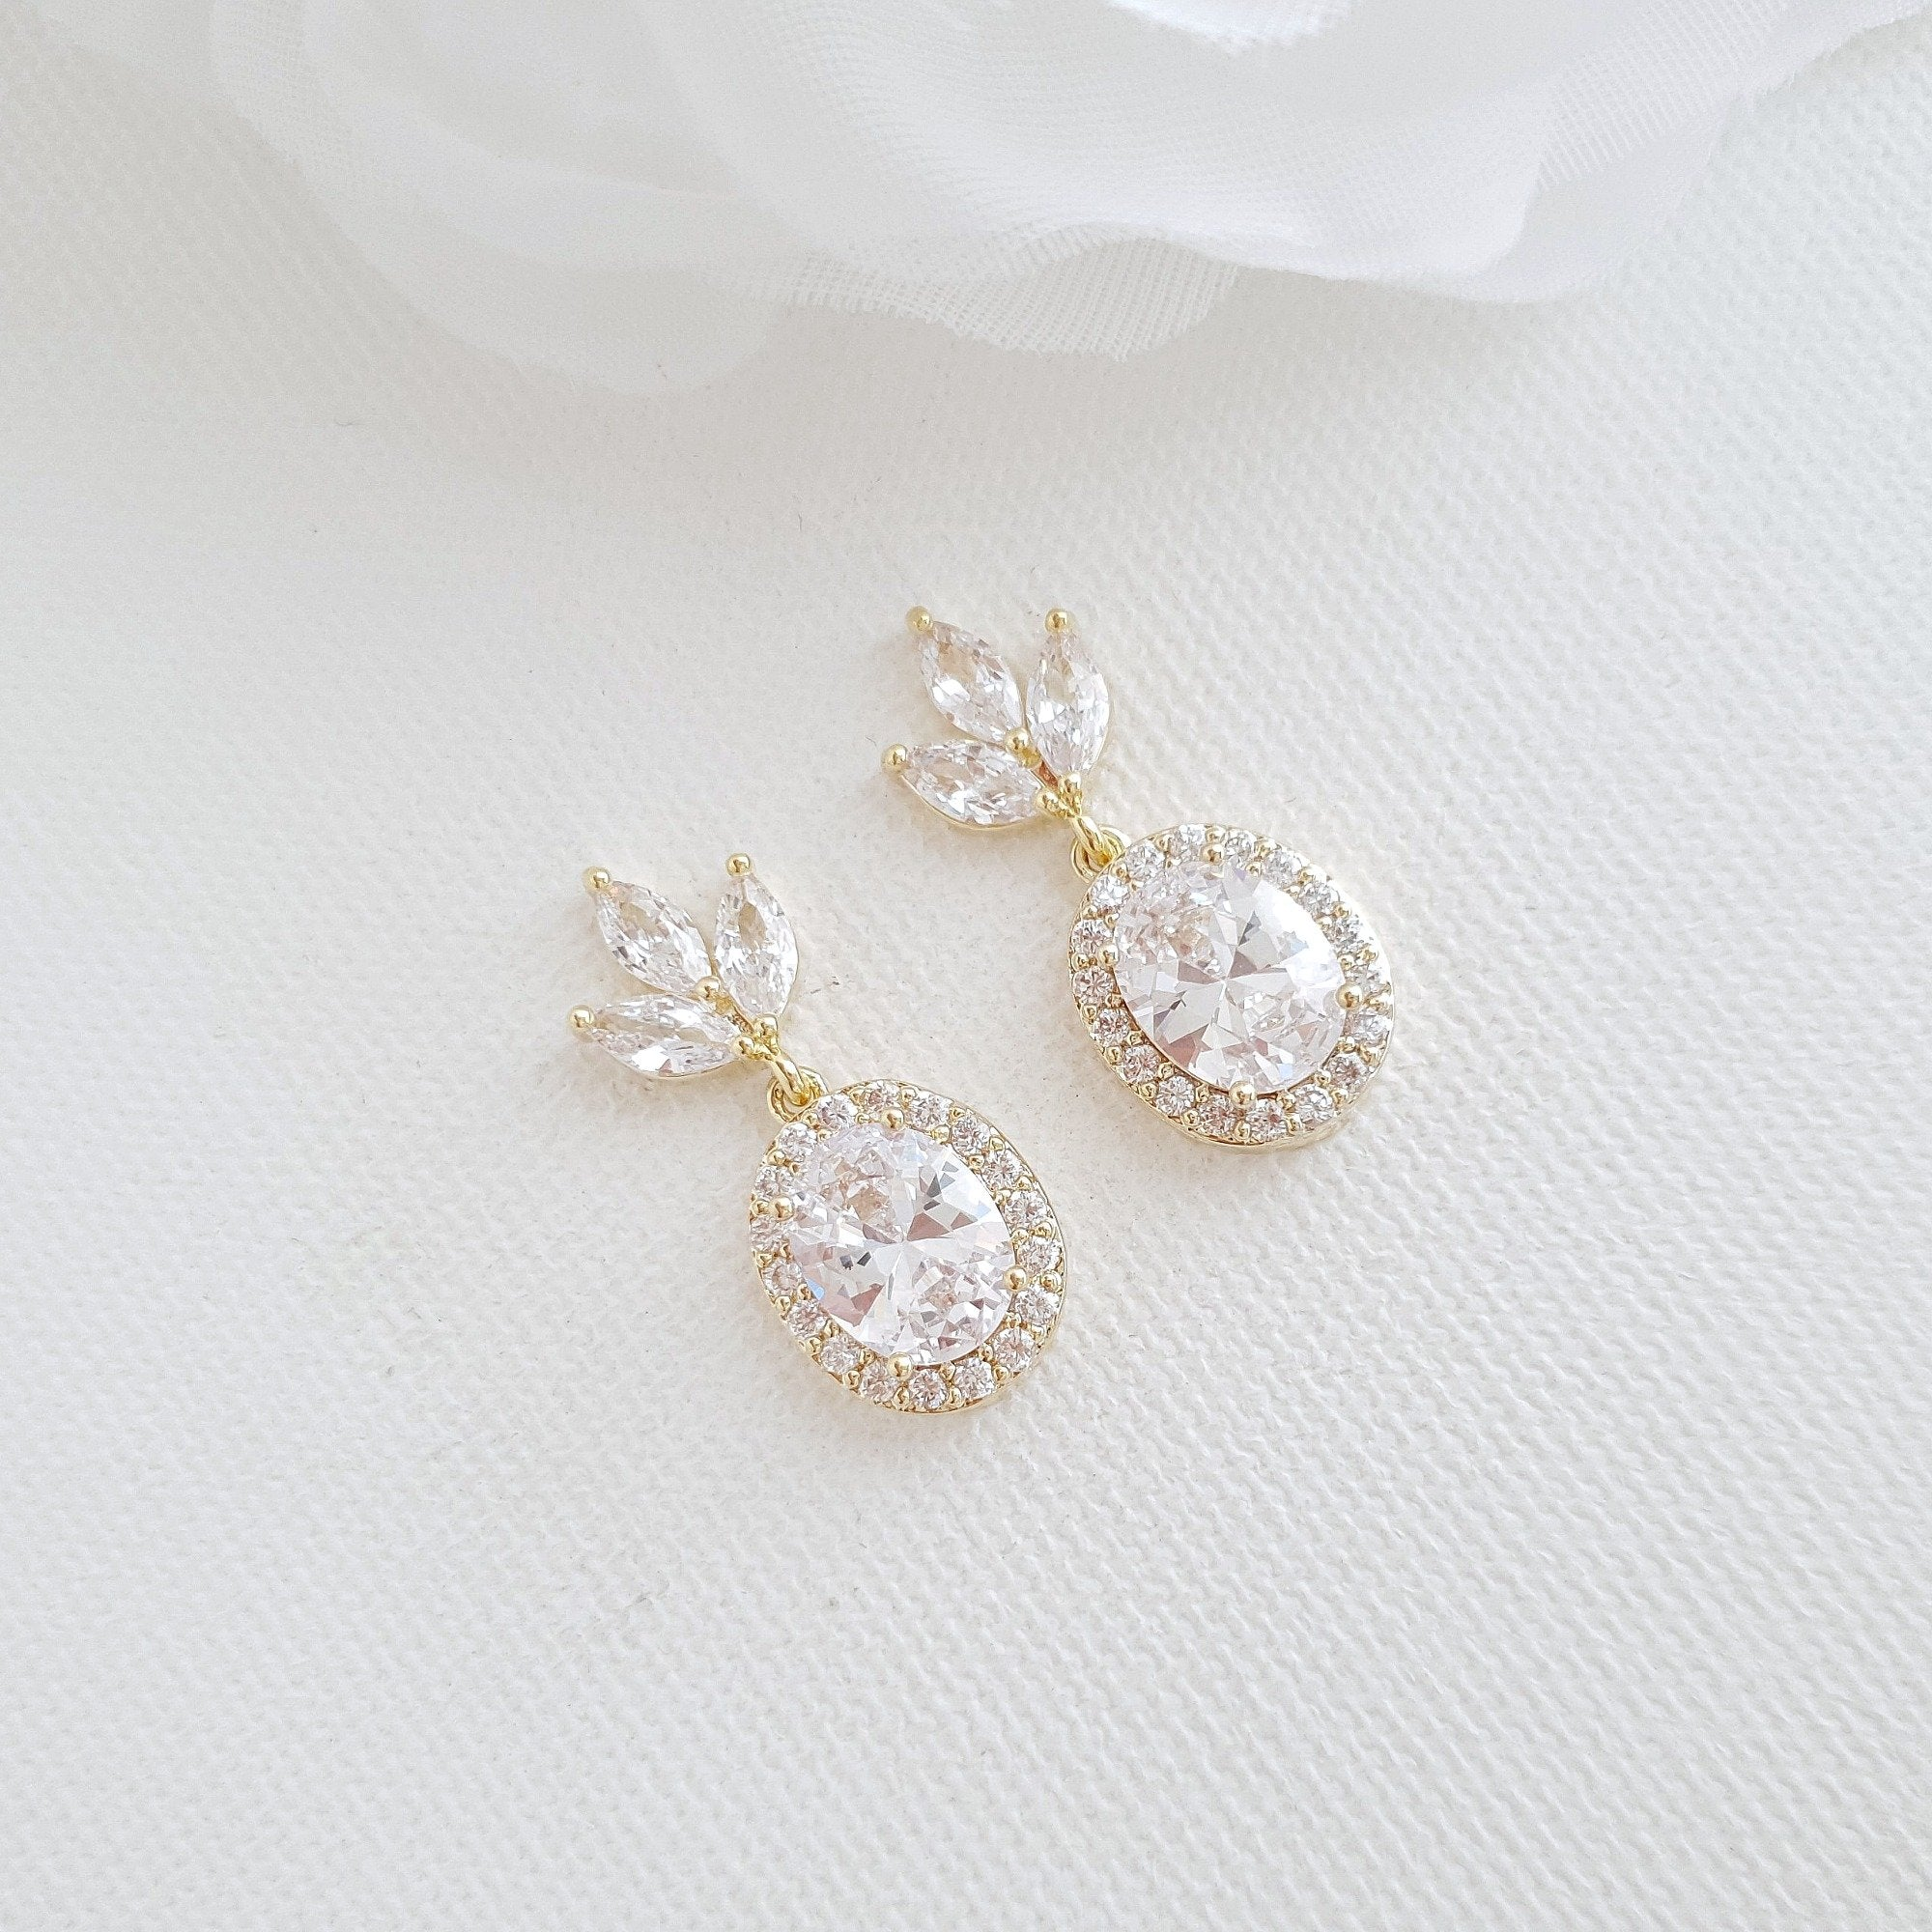 Small Wedding Earrings in Gold- Emily - PoetryDesigns